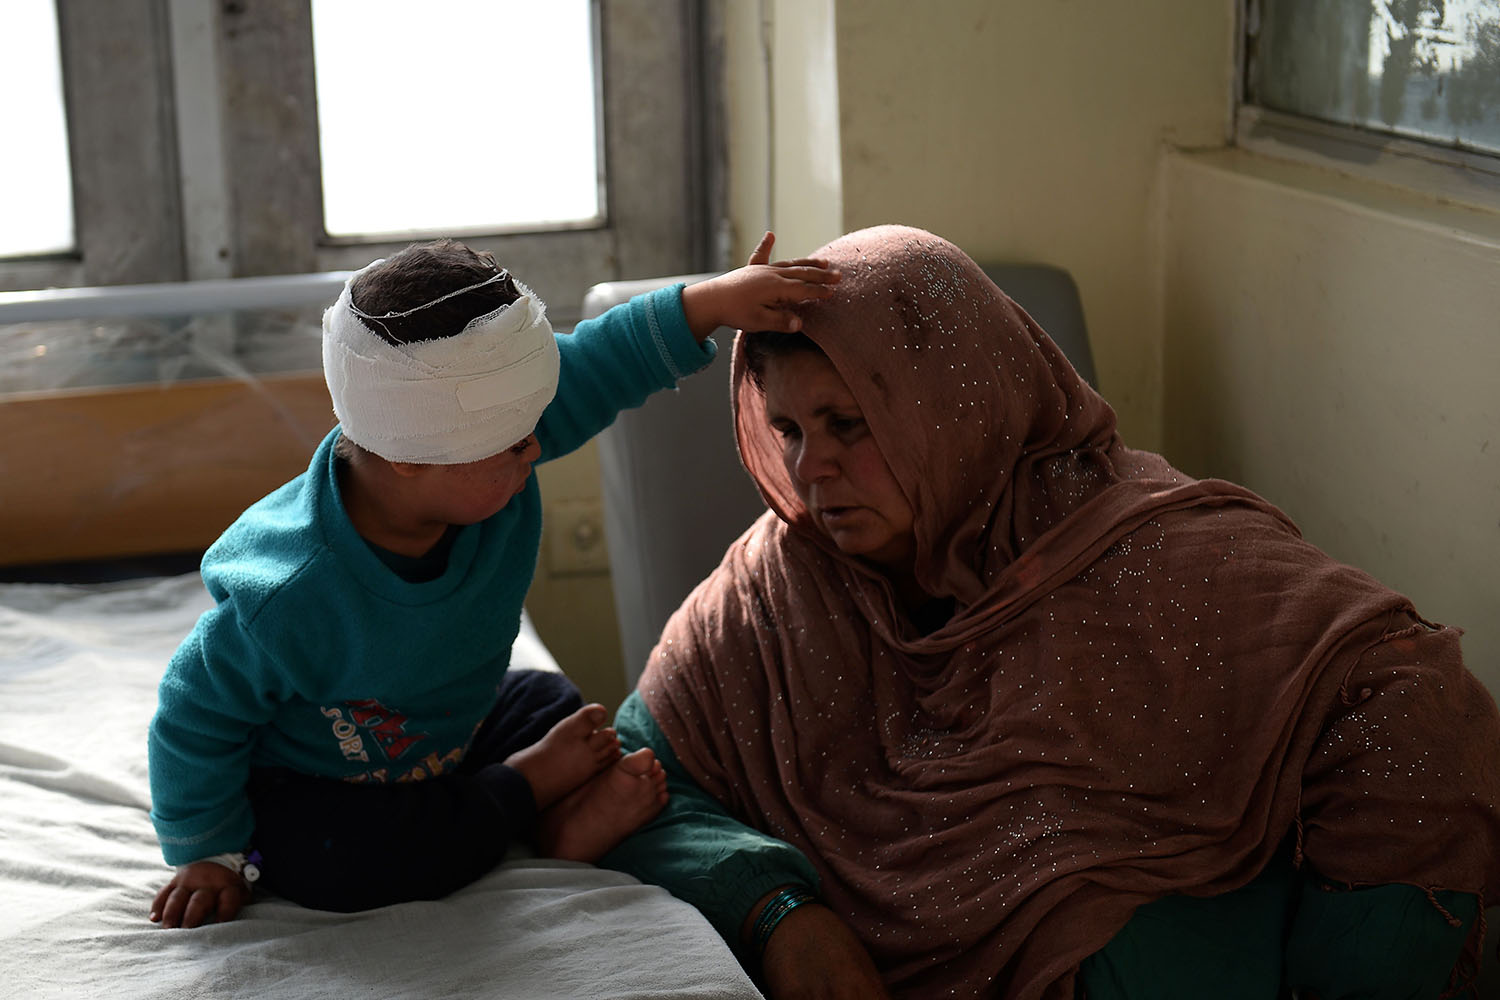 An Afghan woman sits next to a wounded child after receiving treatment at Indira Gandhi Children's Hospital following a powerful truck bomb attack in Kabul on Jan. 15. The Taliban claimed responsibility for the attack that killed at least four people and wounded more than 100. SHAKIB RAHMANI/AFP/Getty Images